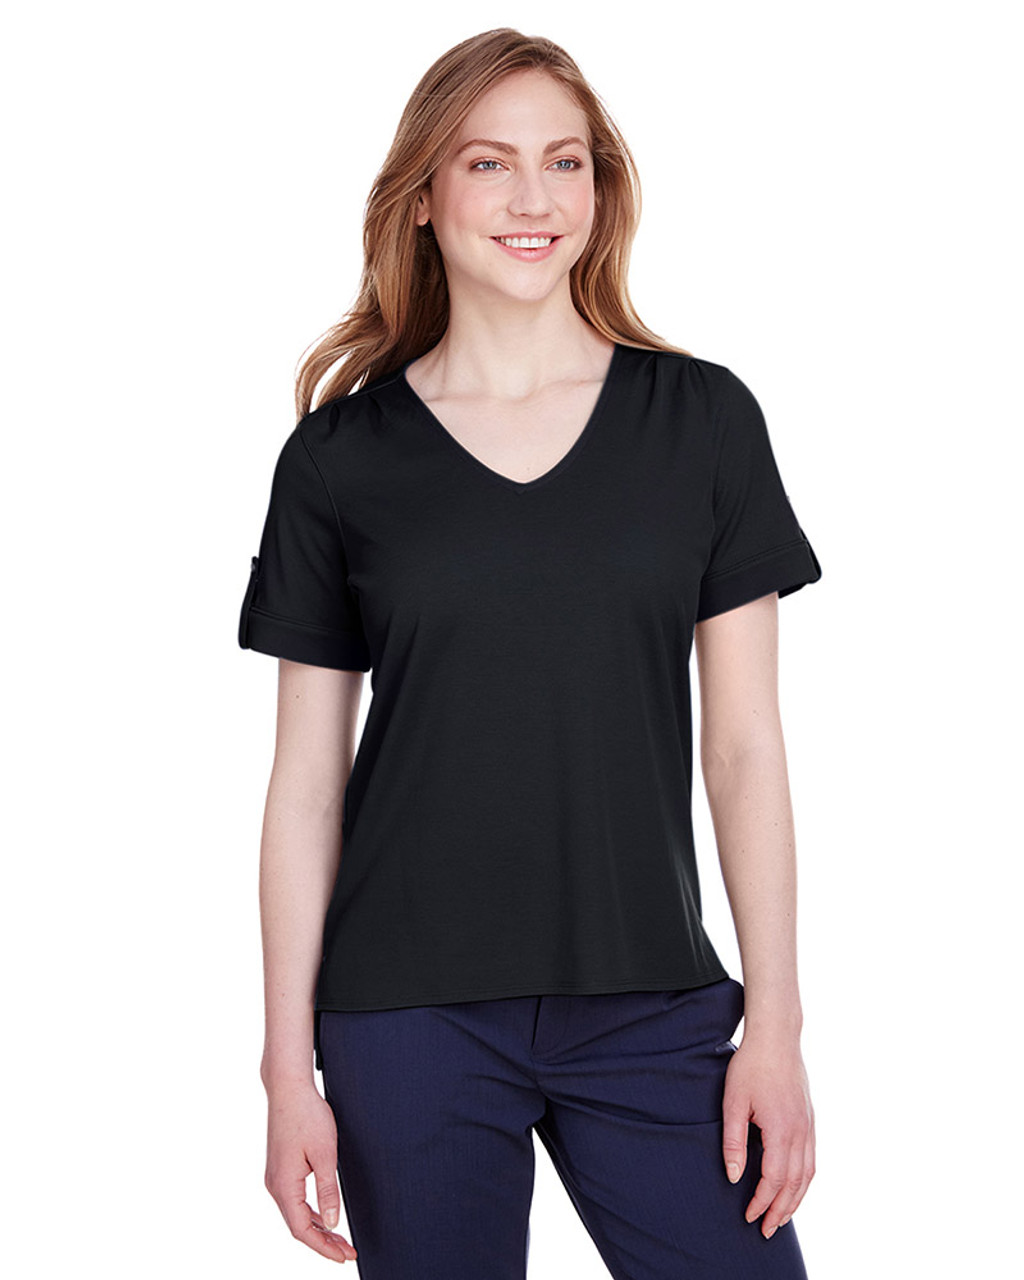 Black - DG20WB Devon & Jones Ladies' CrownLux Performance™ Plaited Rolled-Sleeve Top | Blankclothing.ca